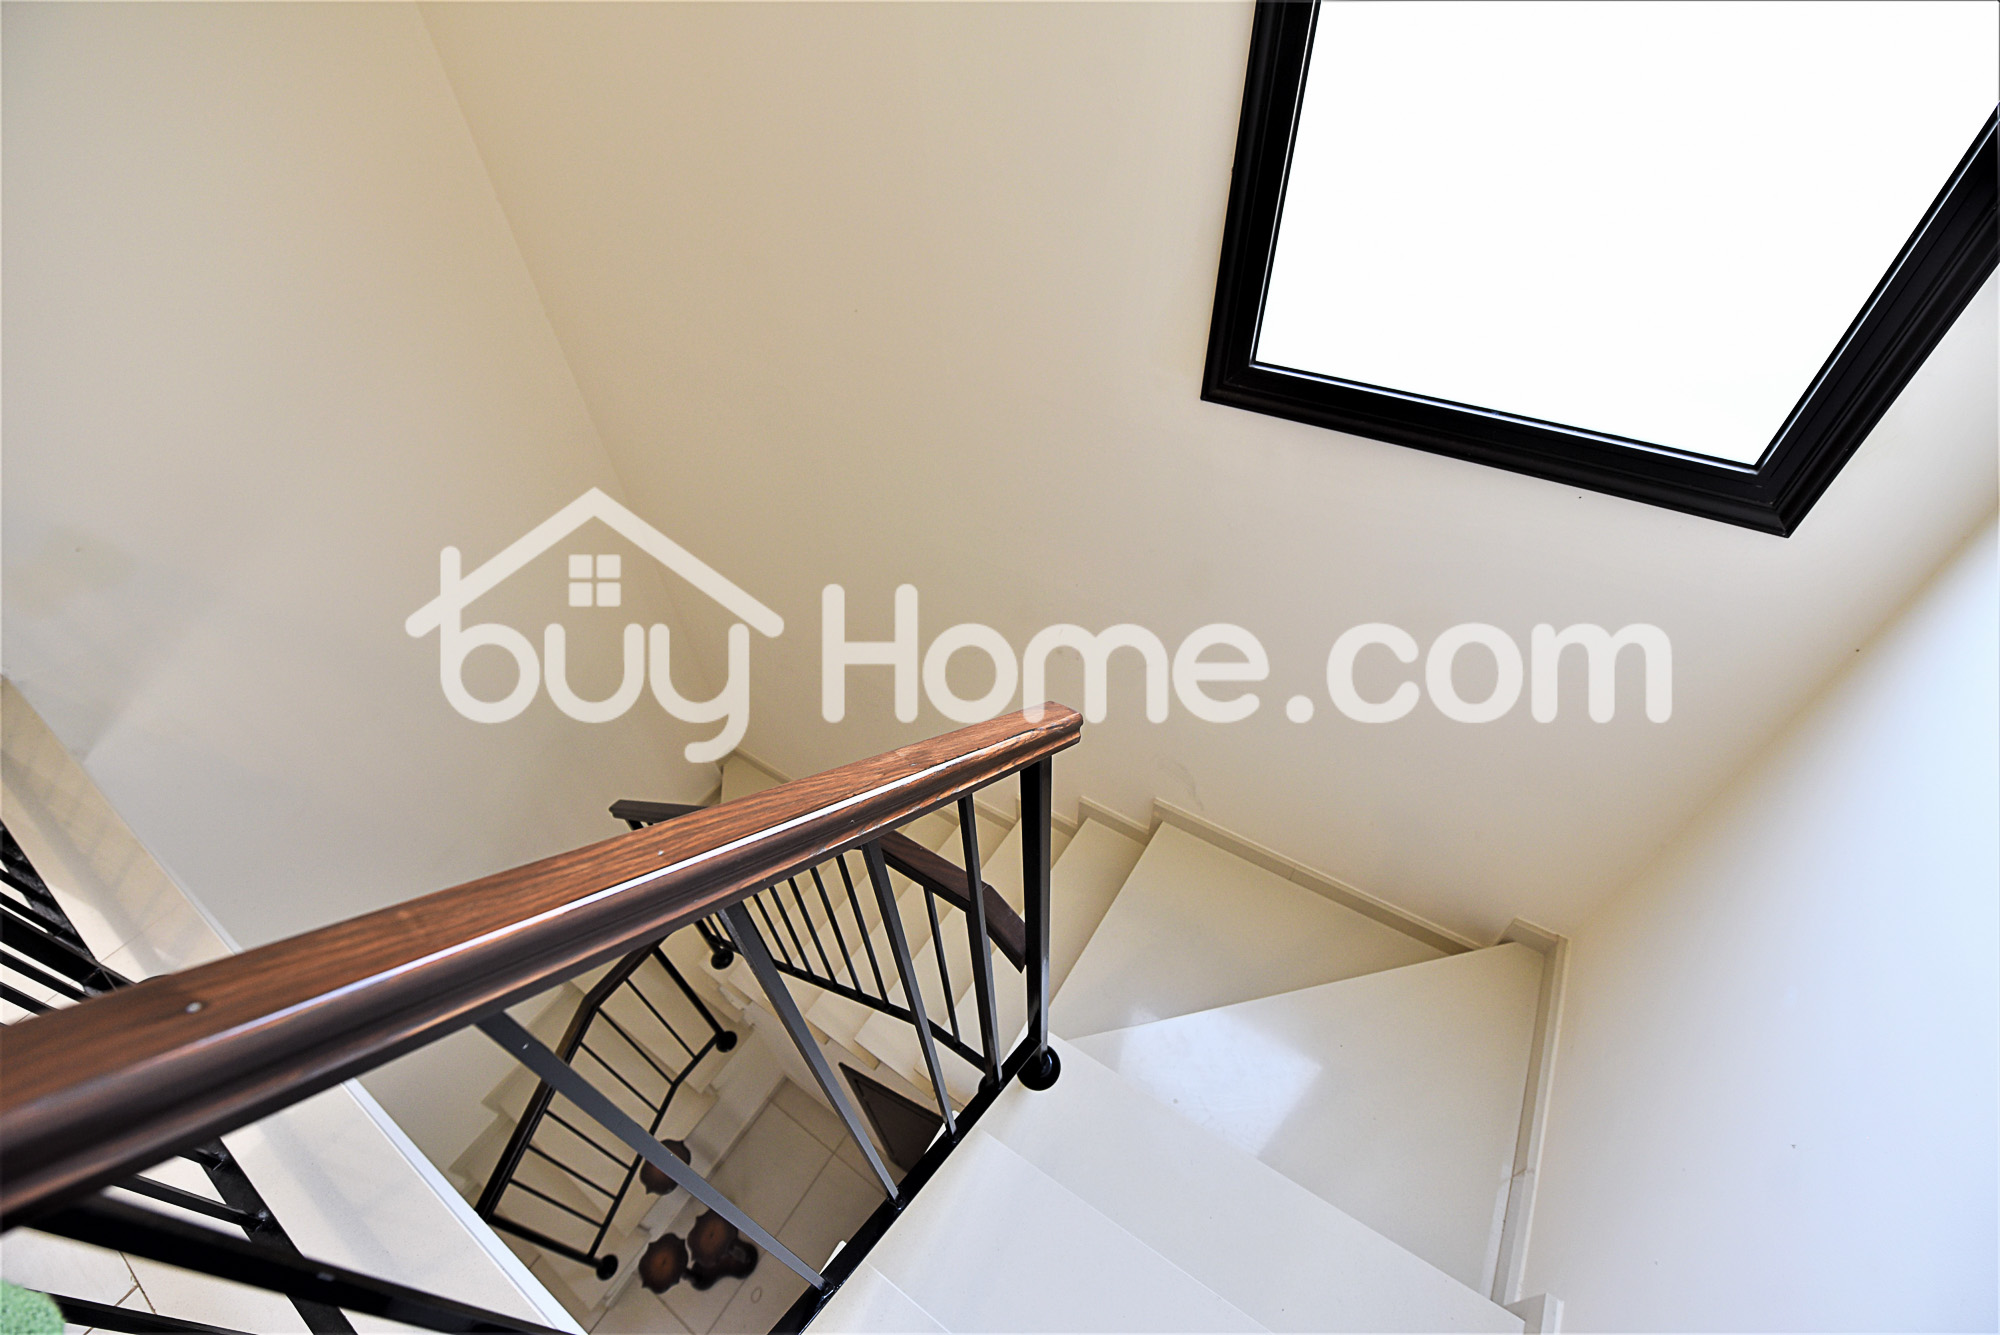 3 BDR house for rent | BuyHome